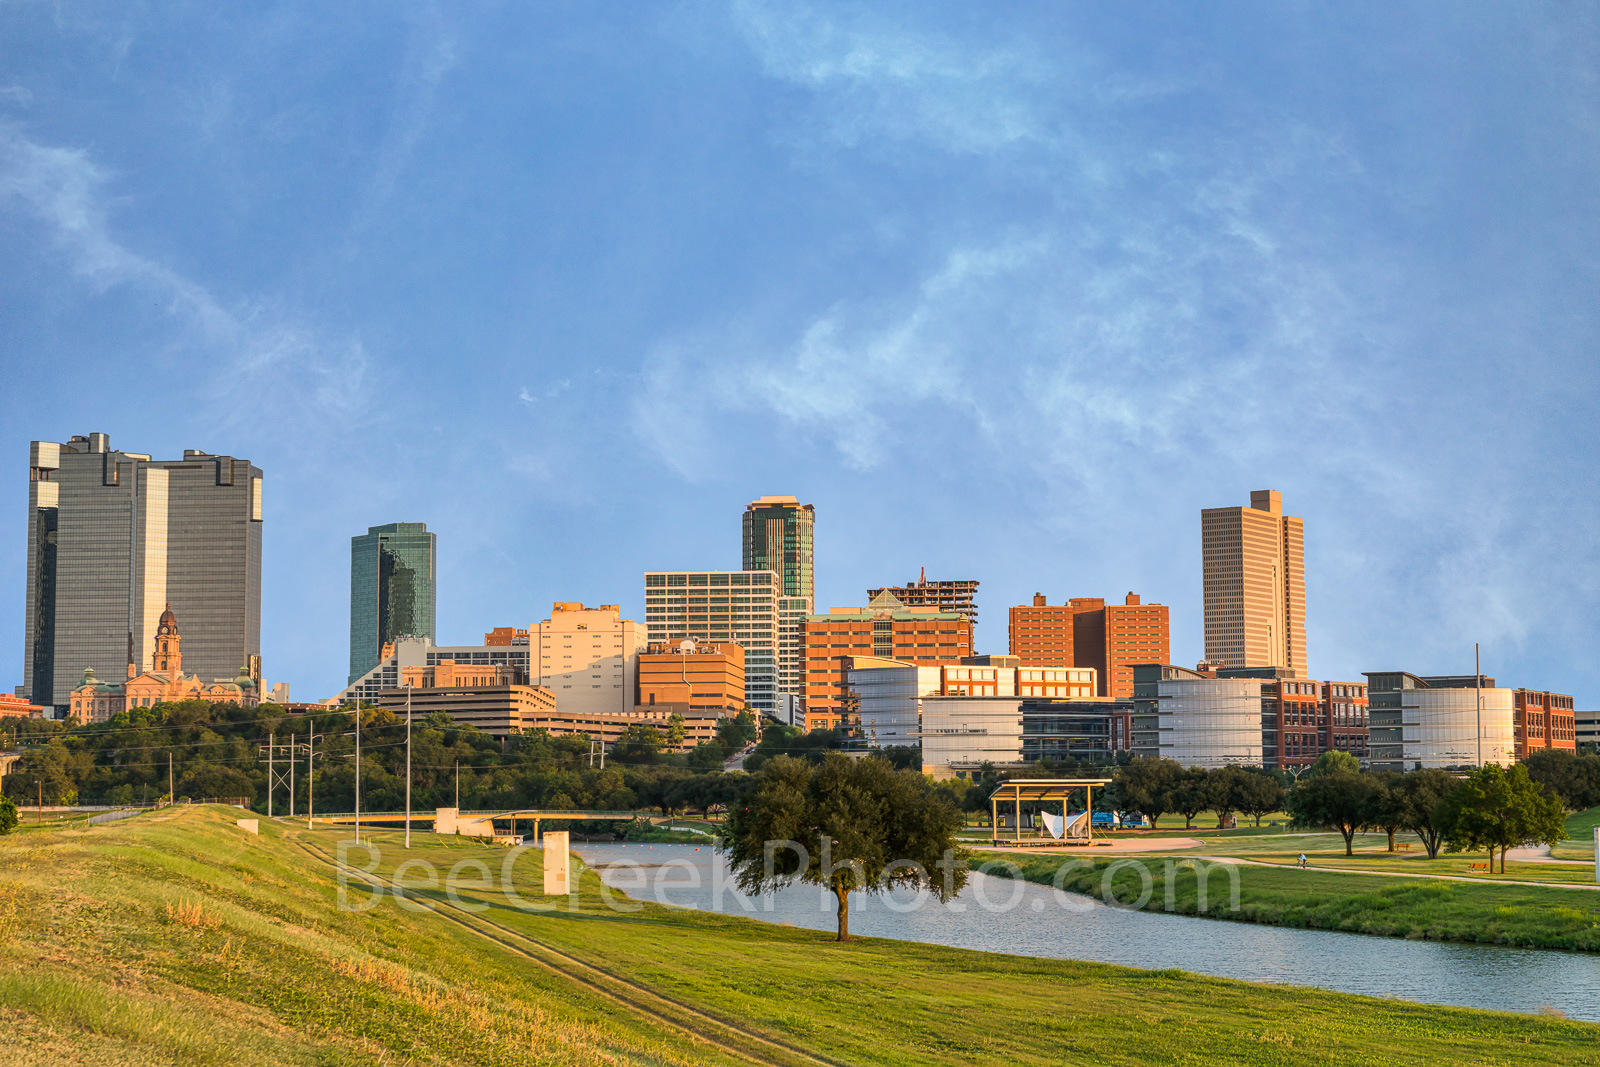 Fort Worth, Skyline, Trinity river, downtown, cityscape, city, county courthouse, Burnet Tower, Tarrant County College, The Tower,